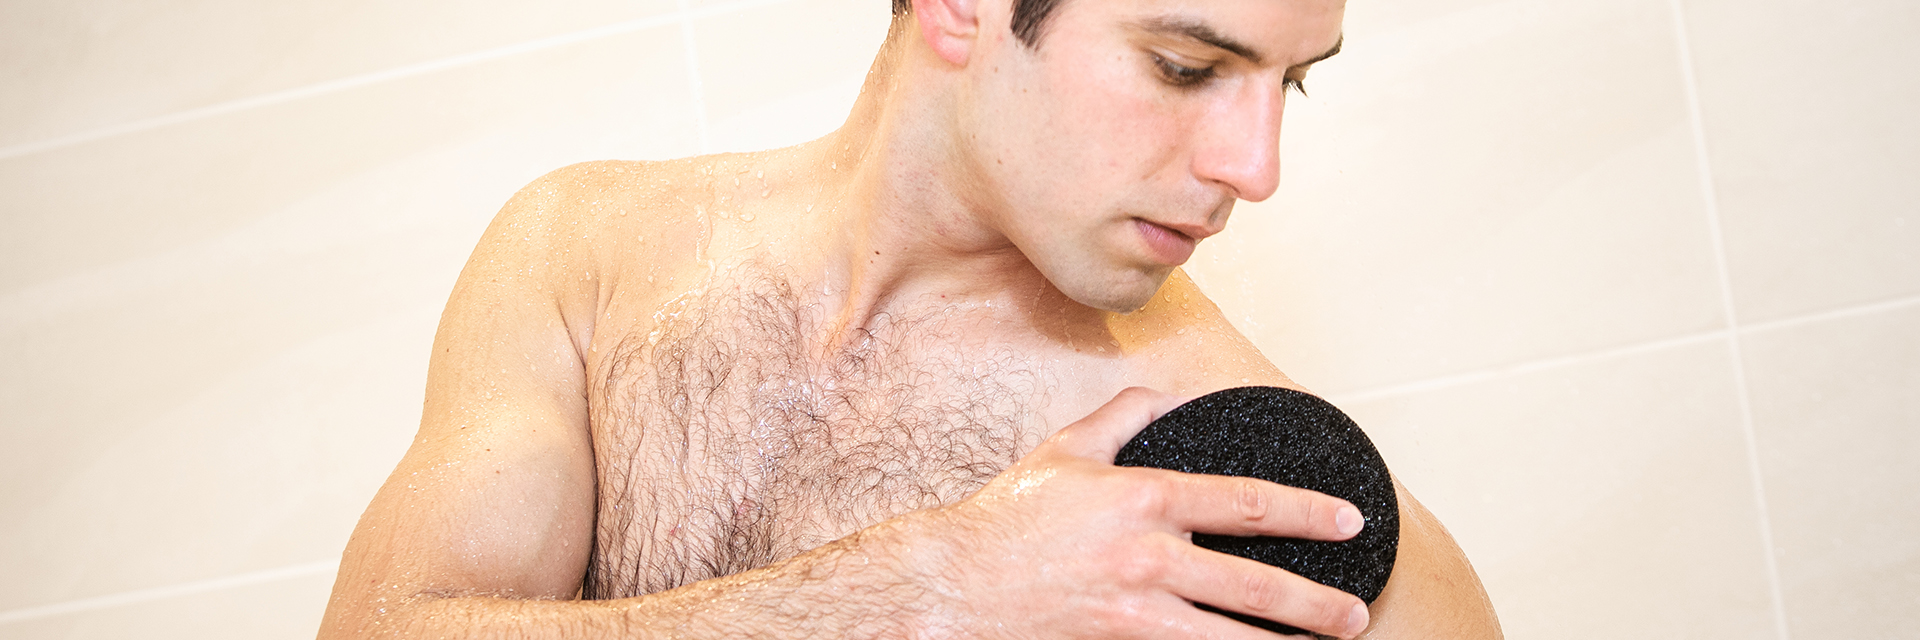 Man in shower using a Ramer Sponge